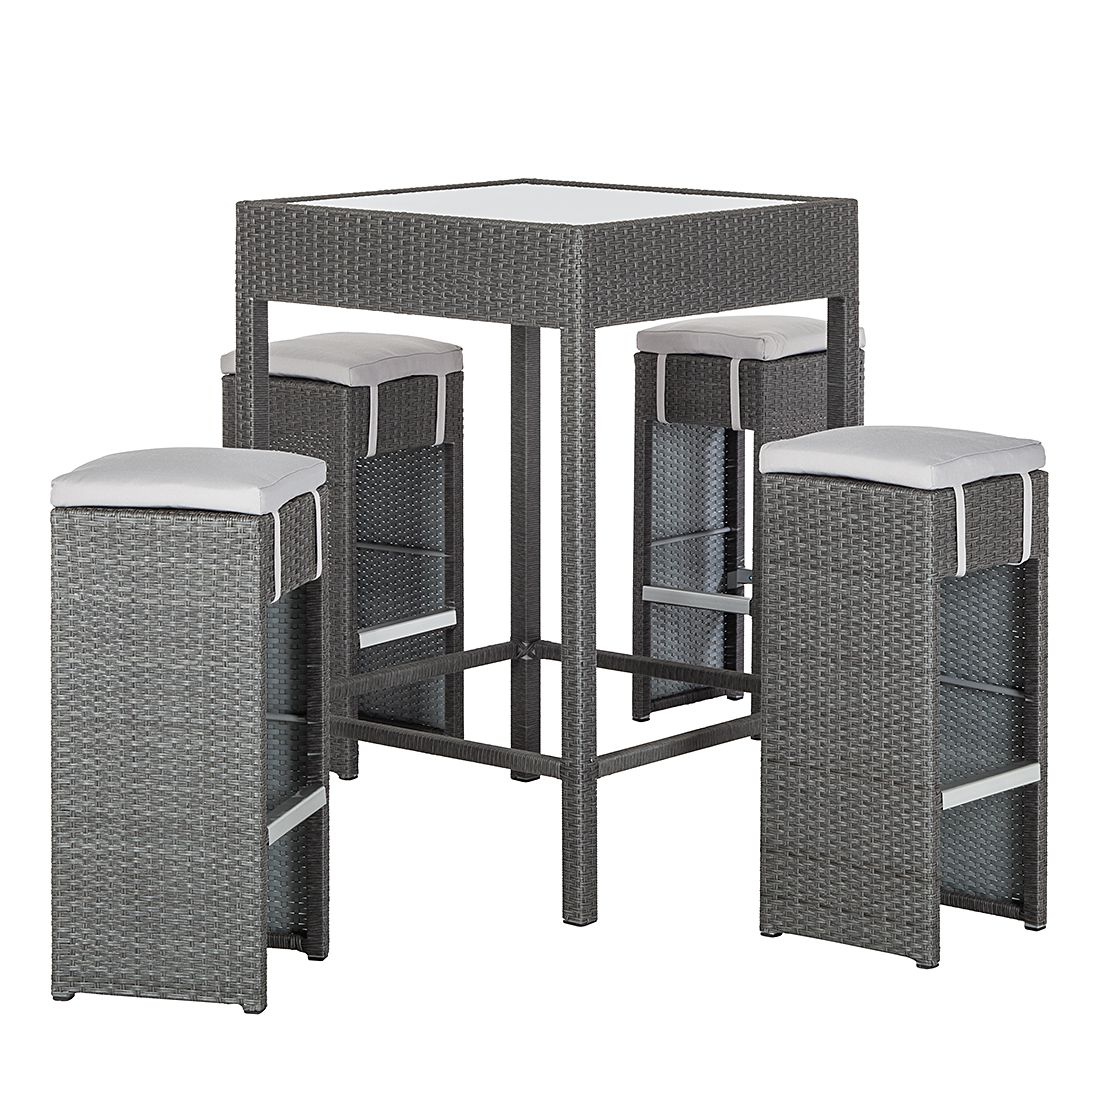 gartenbar set paradise lounge 5 teilig polyrattan grau kings garden g nstig kaufen. Black Bedroom Furniture Sets. Home Design Ideas